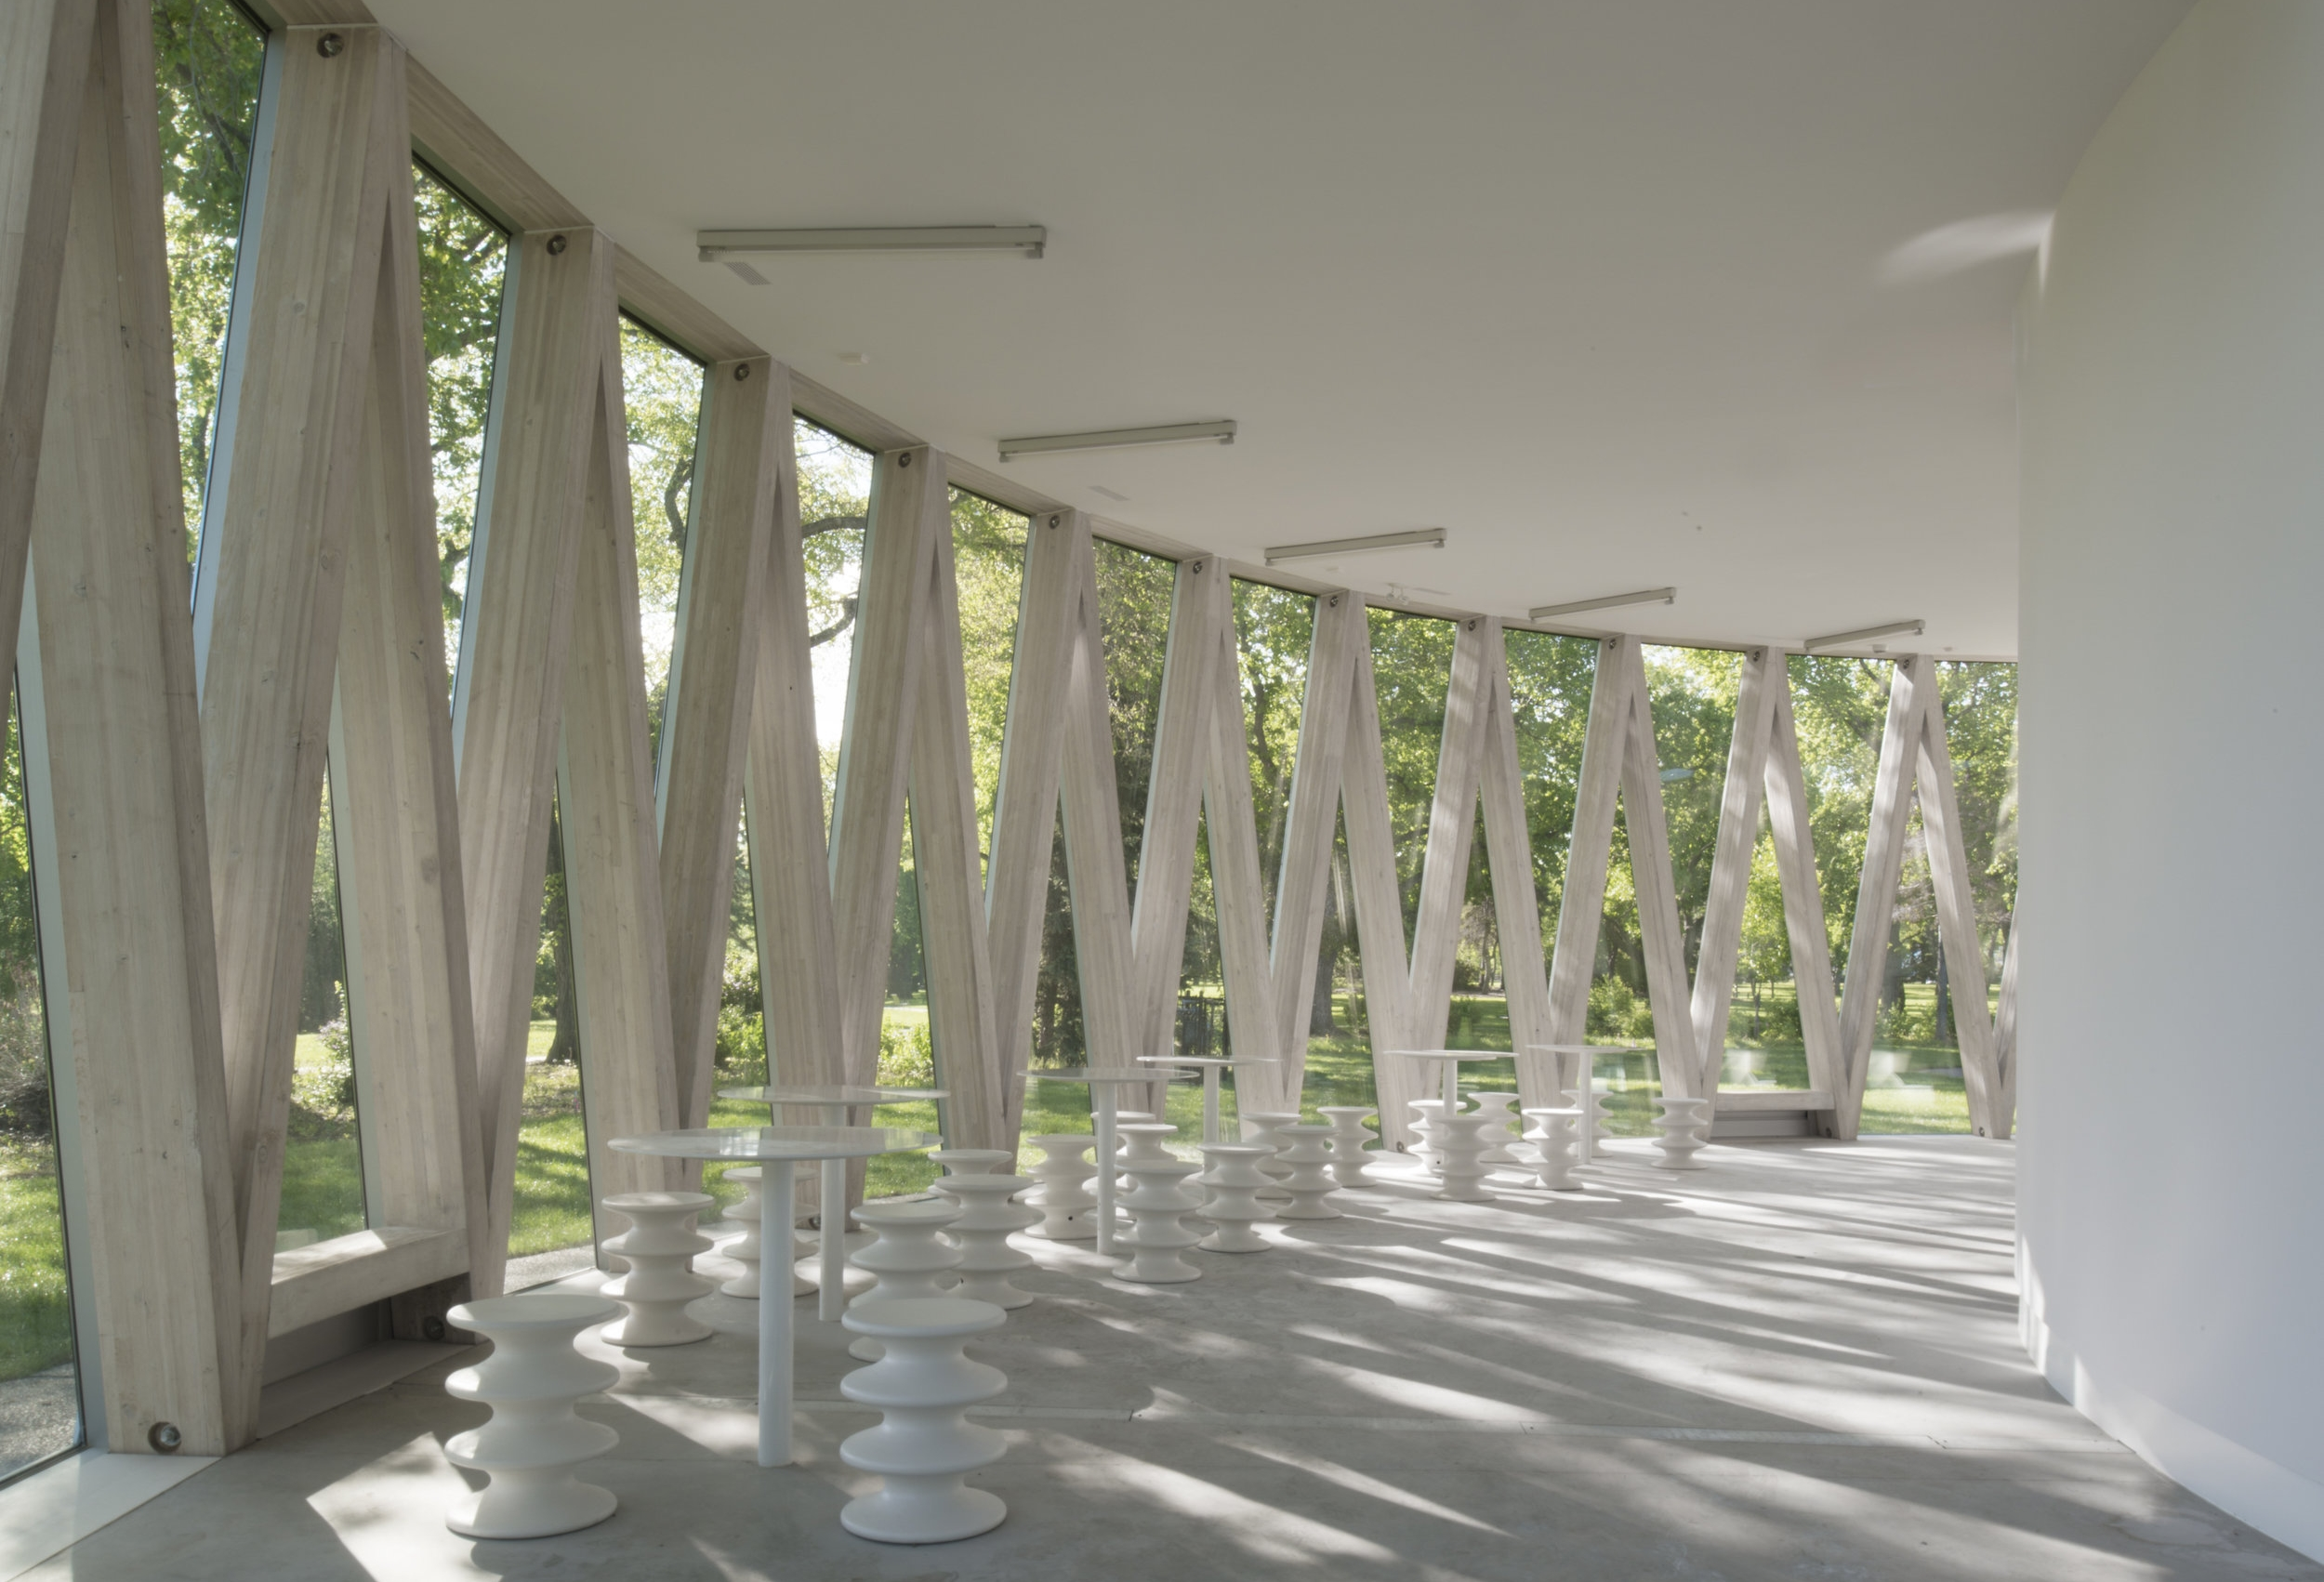 Borden Park Pavilion - interior wood and glass structure and fur